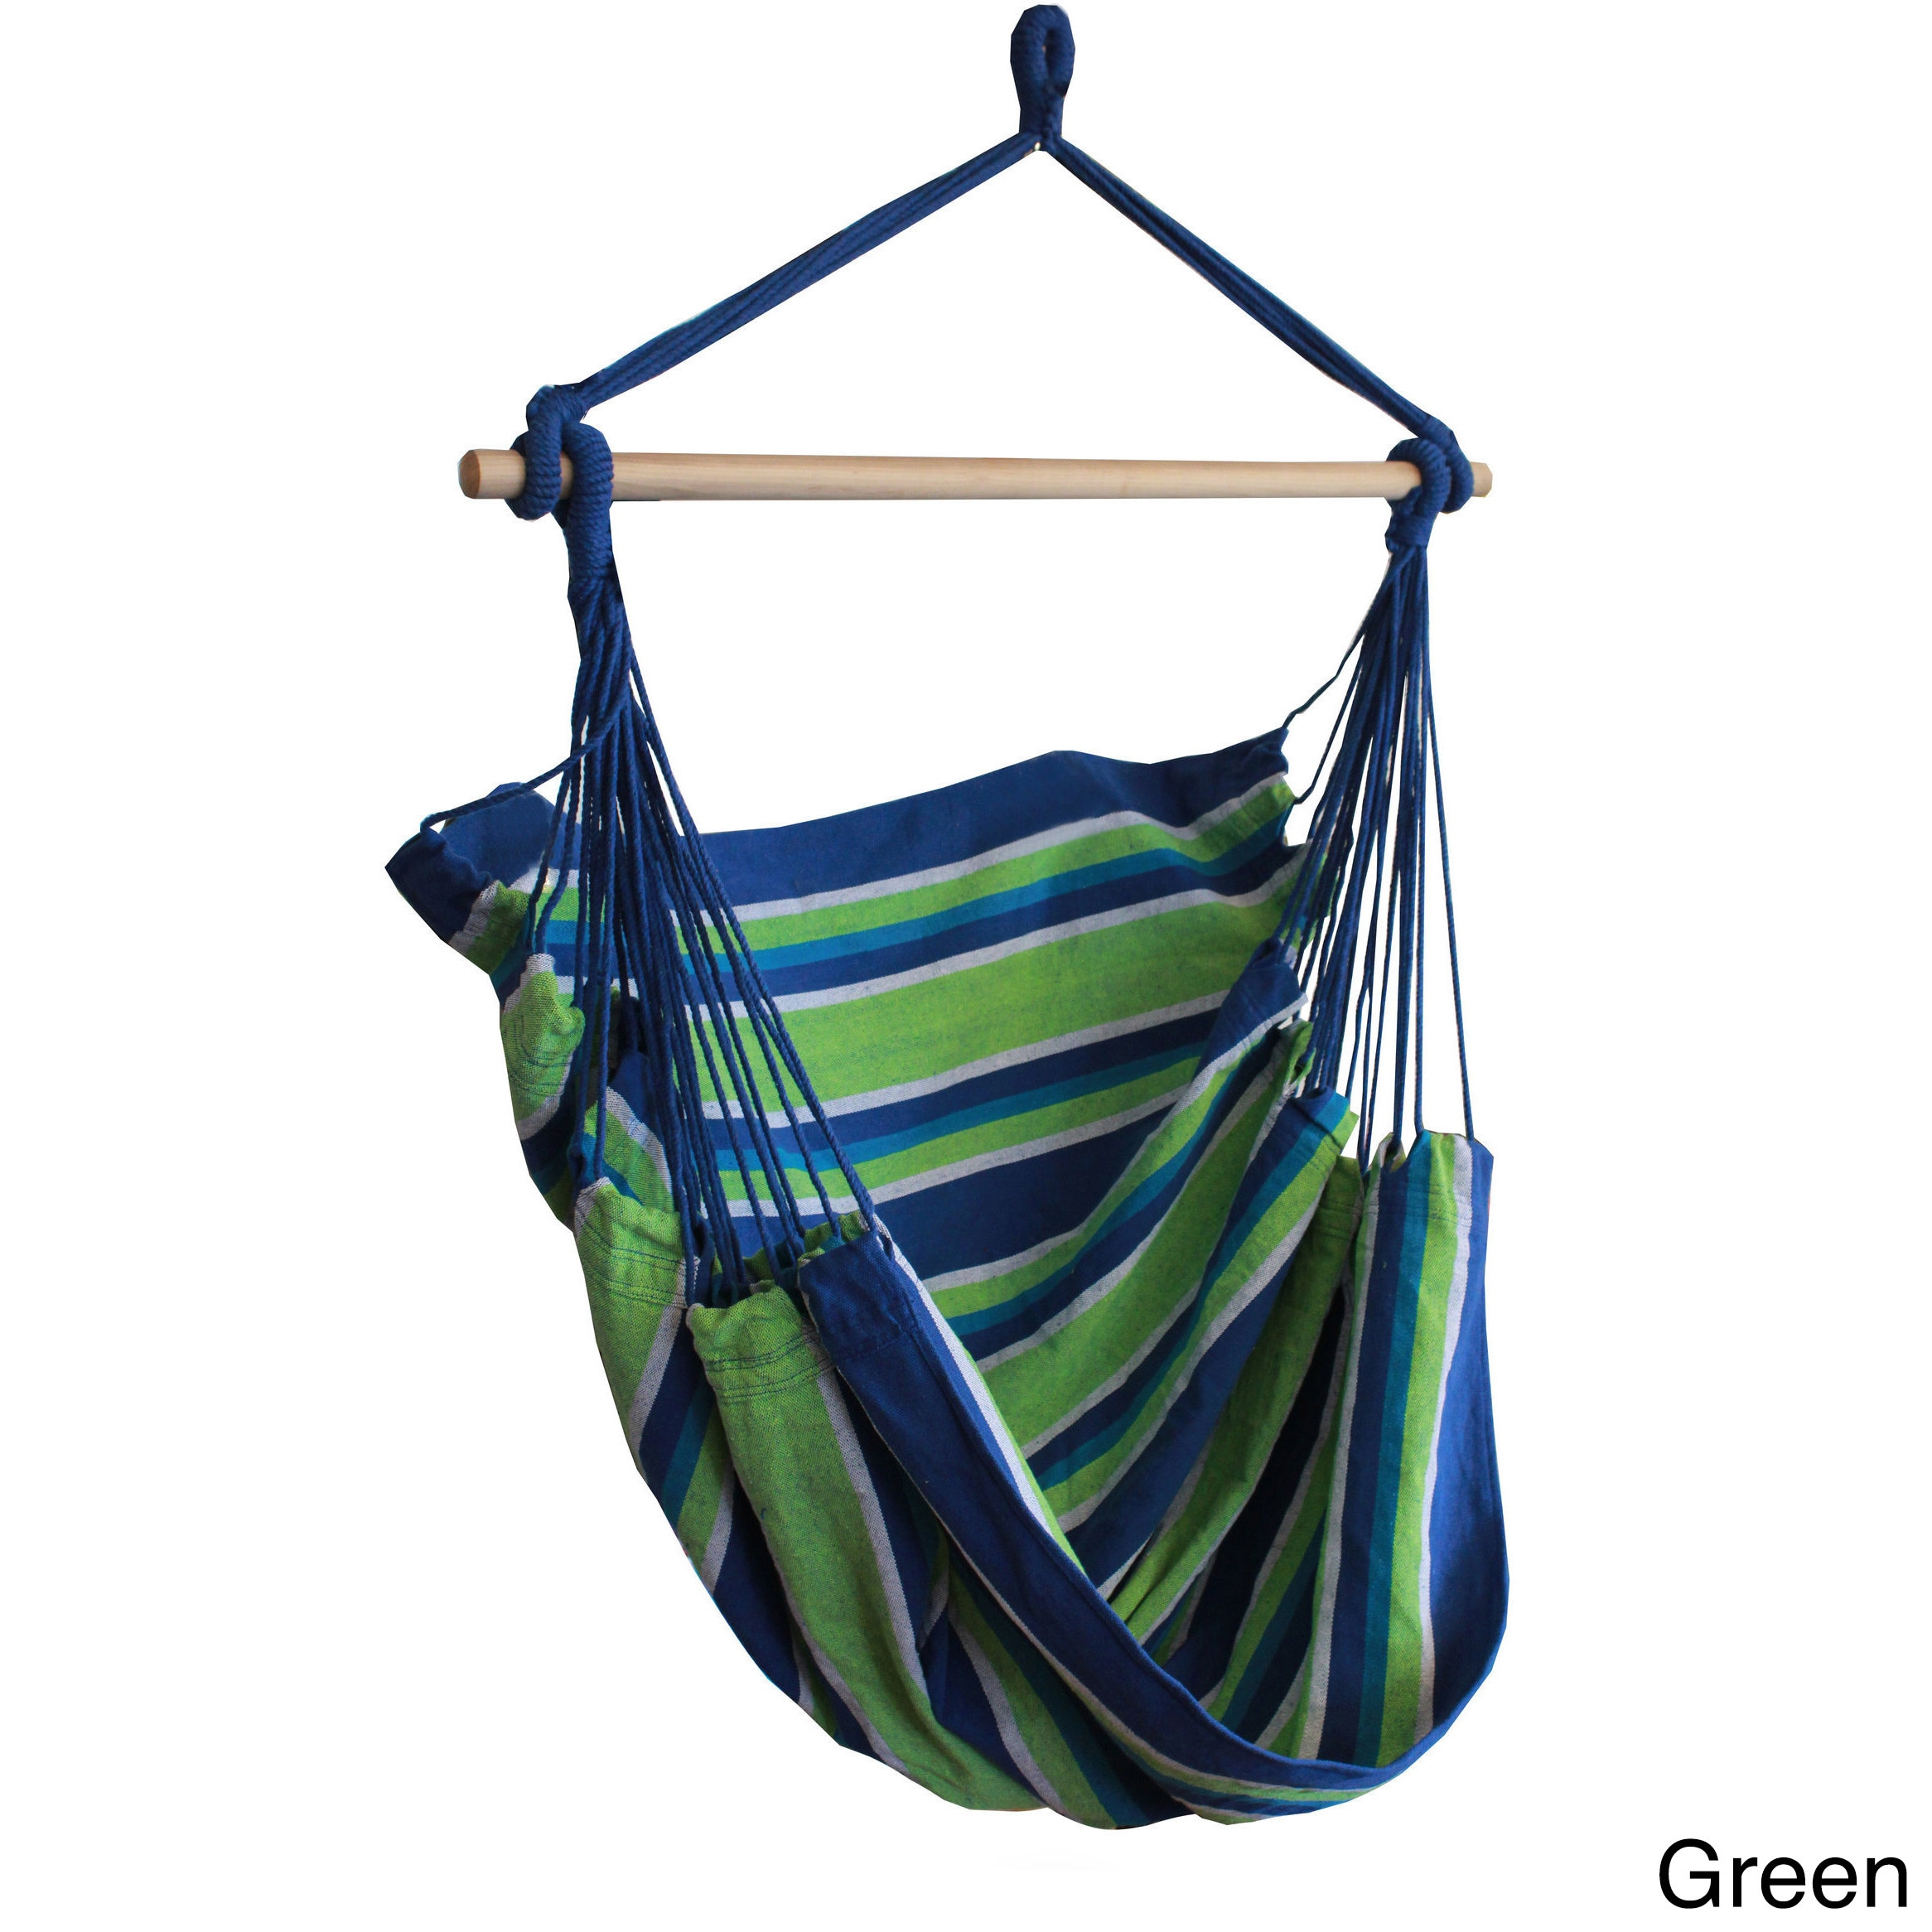 woven hammock cfm single small product bay hand style master hayneedle brazilian smalltraditionalbraziliansolidcoloredhammock traditional colored solid island